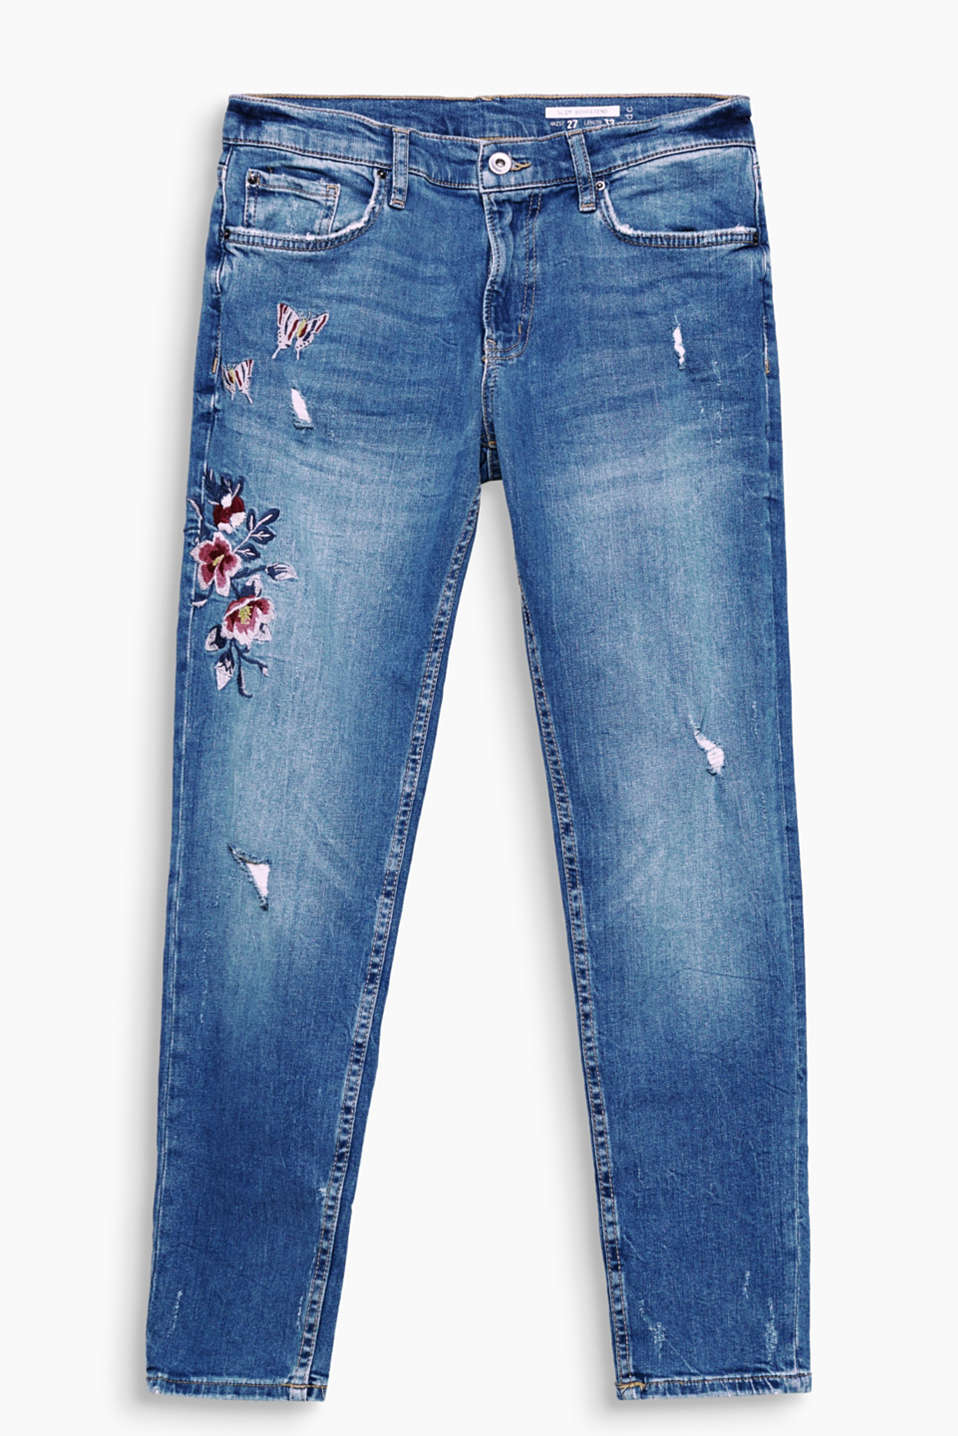 With a pre-washed and distressed finish plus floral embroidery: 5 pocket jeans made of comfy and stretchy cotton denim